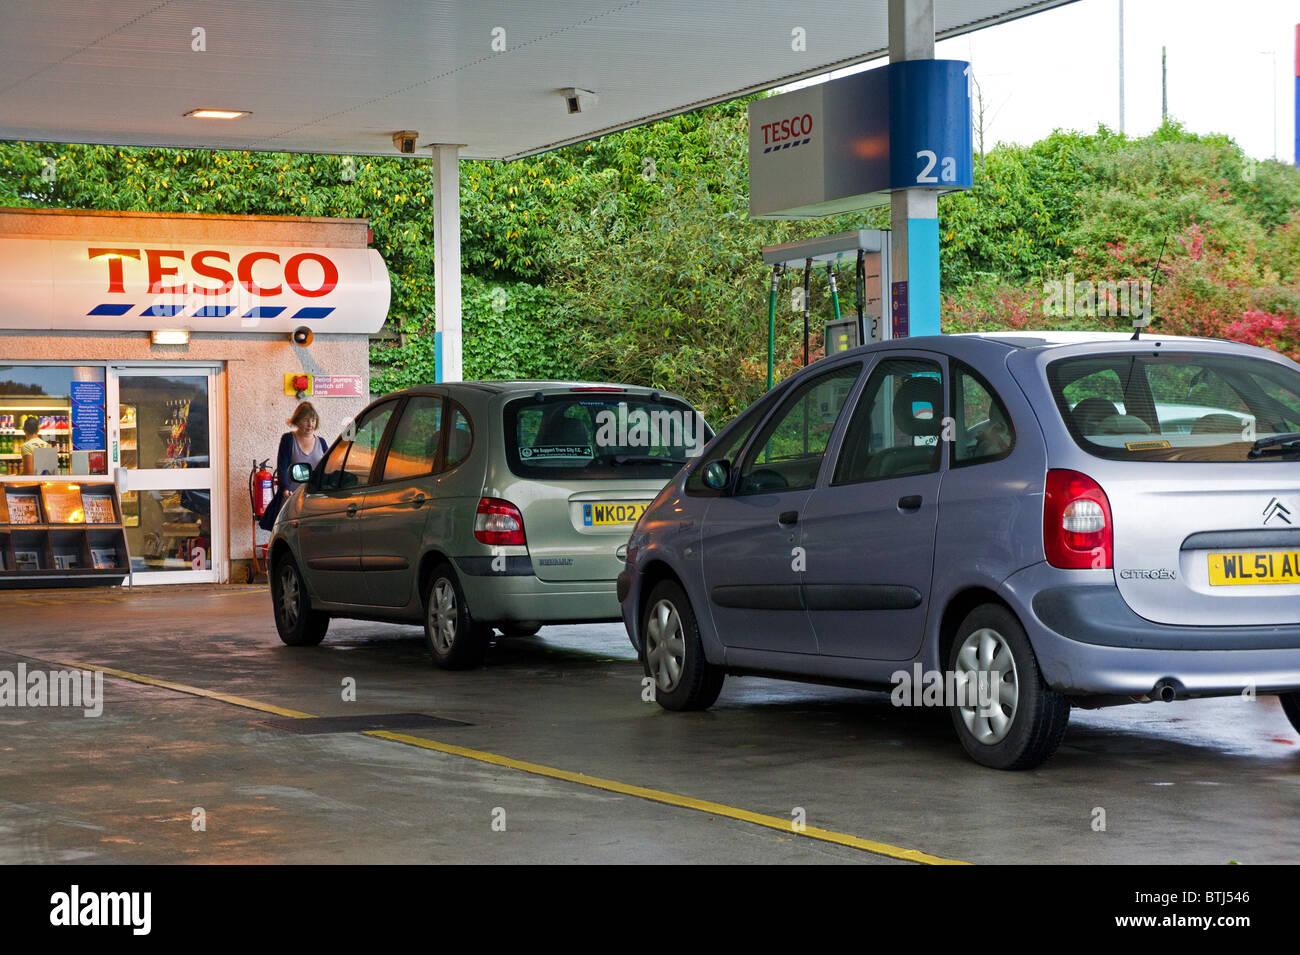 cars waiting for fuel at a Tesco petrol station, uk - Stock Image